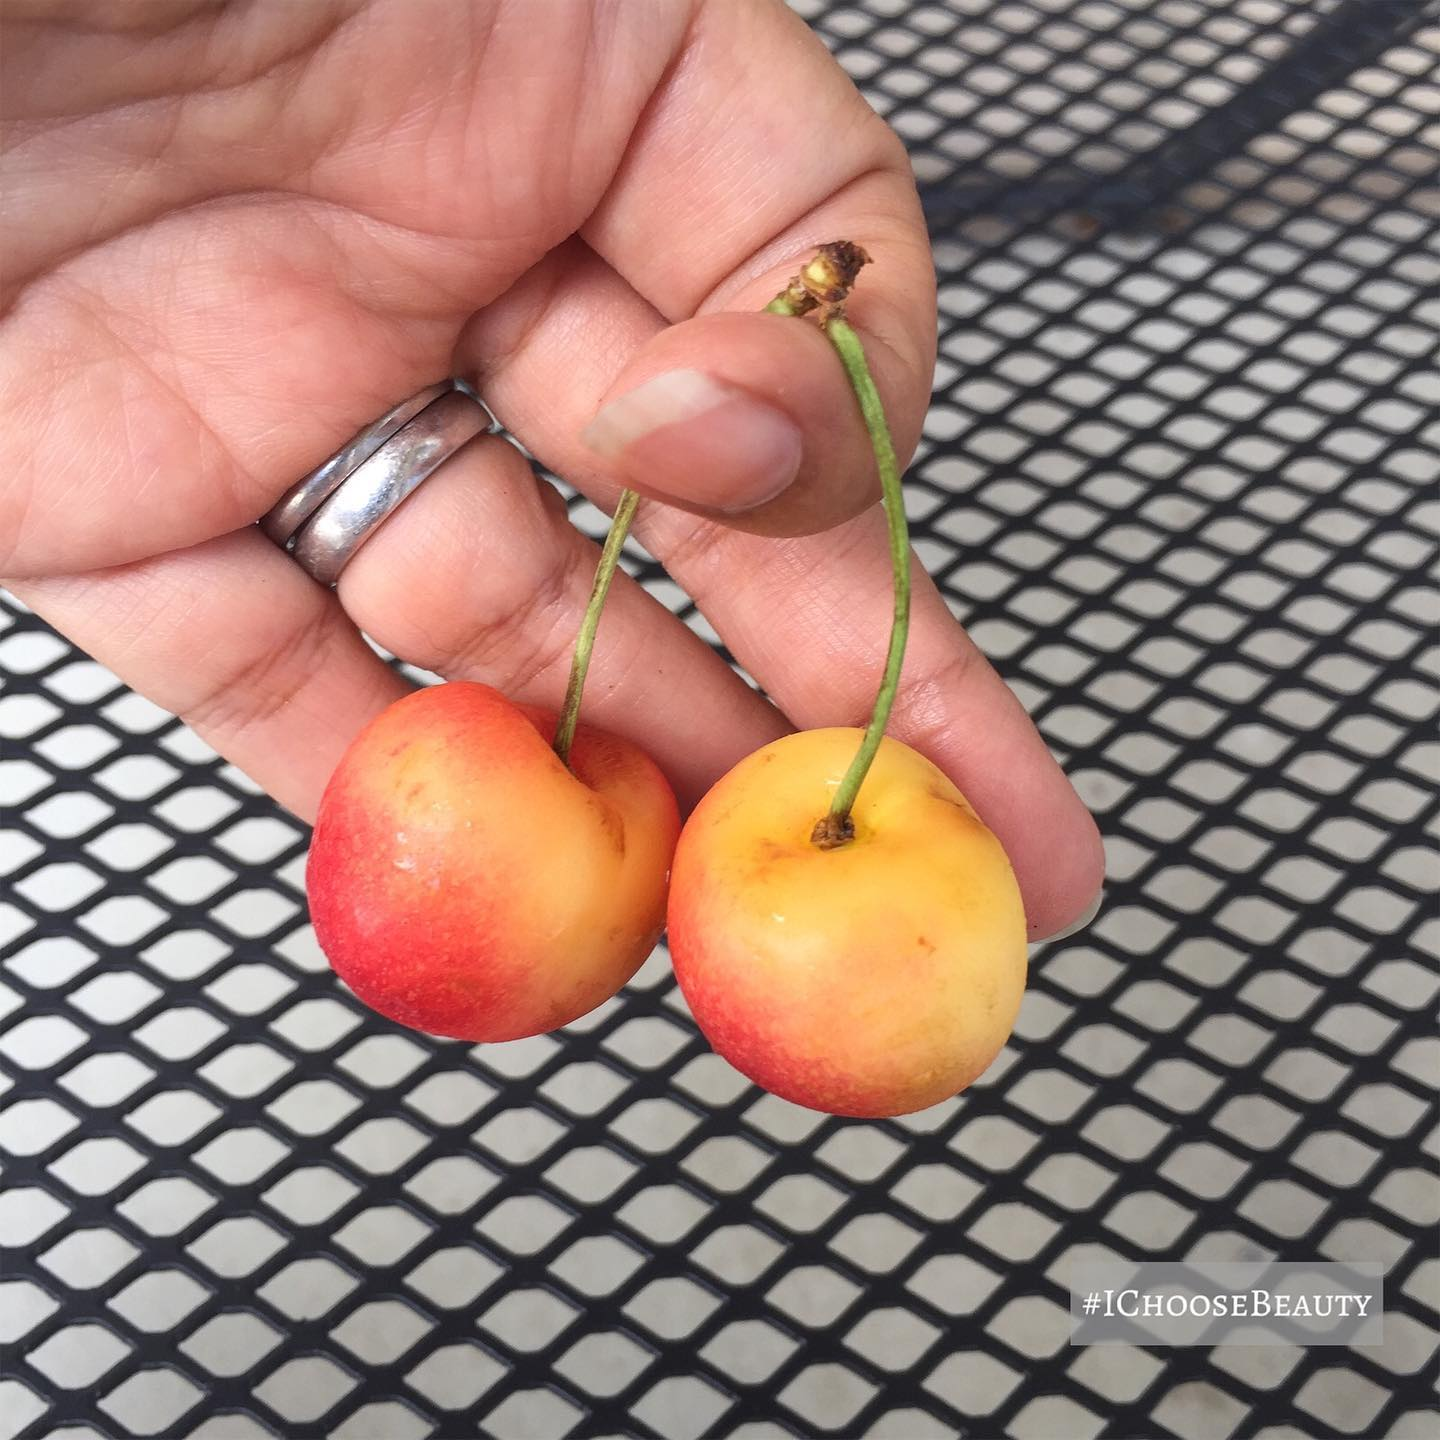 Anyone else think it's cute when cherries come in pairs?   #ichoosebeauty Day 2423